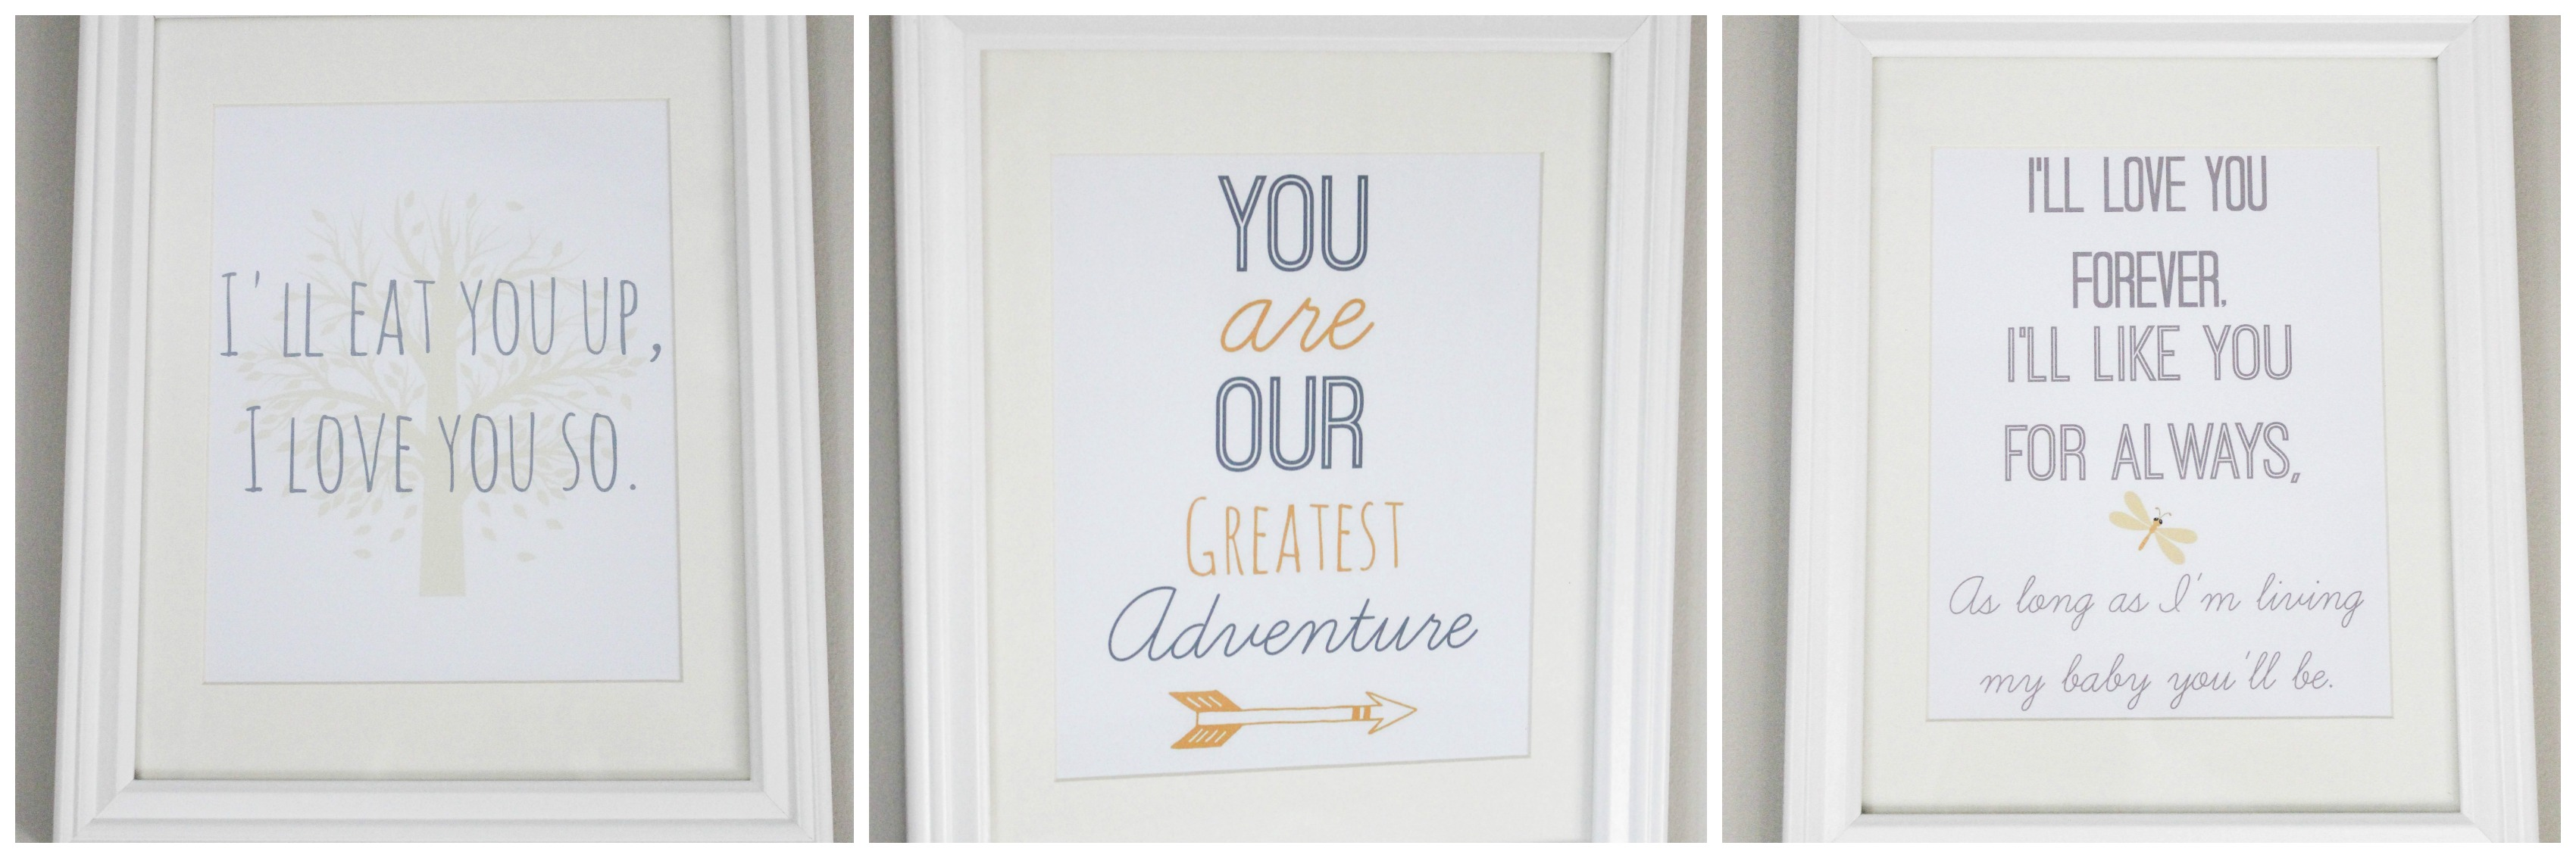 free printable nursery wall art! - erin spain